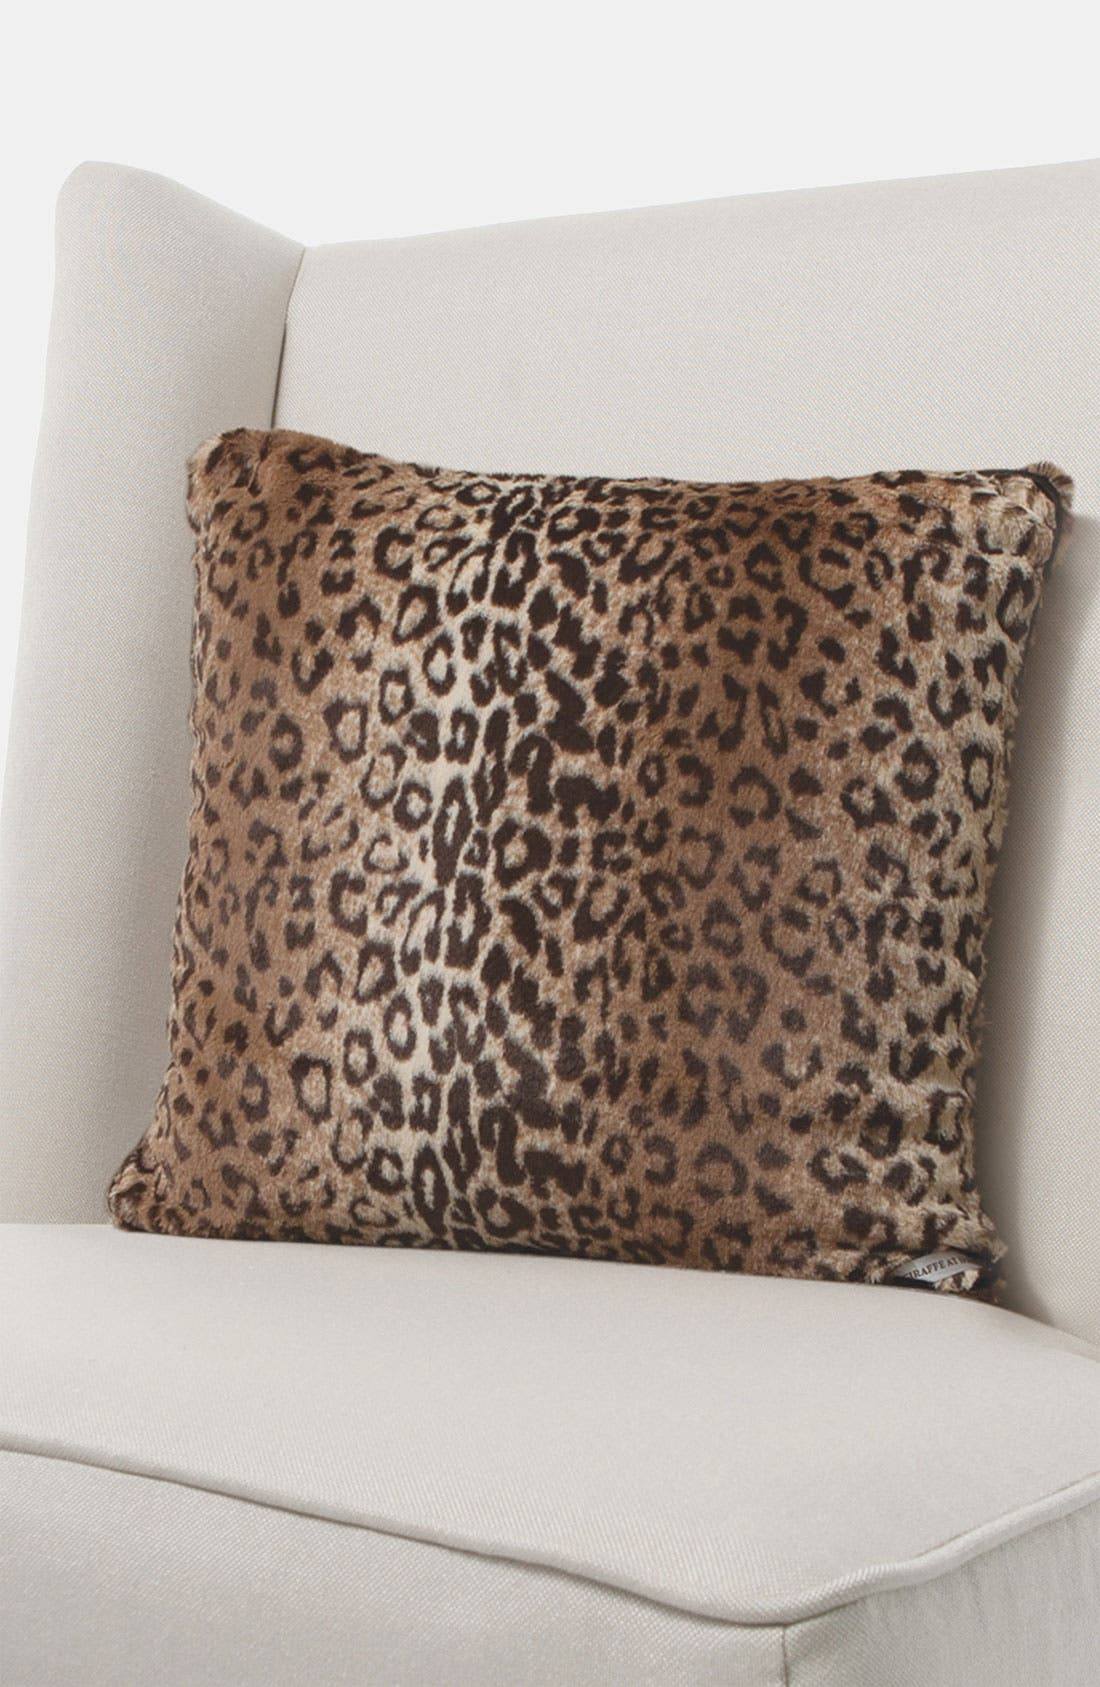 'Luxe Leopard' Throw Pillow,                         Main,                         color, 200